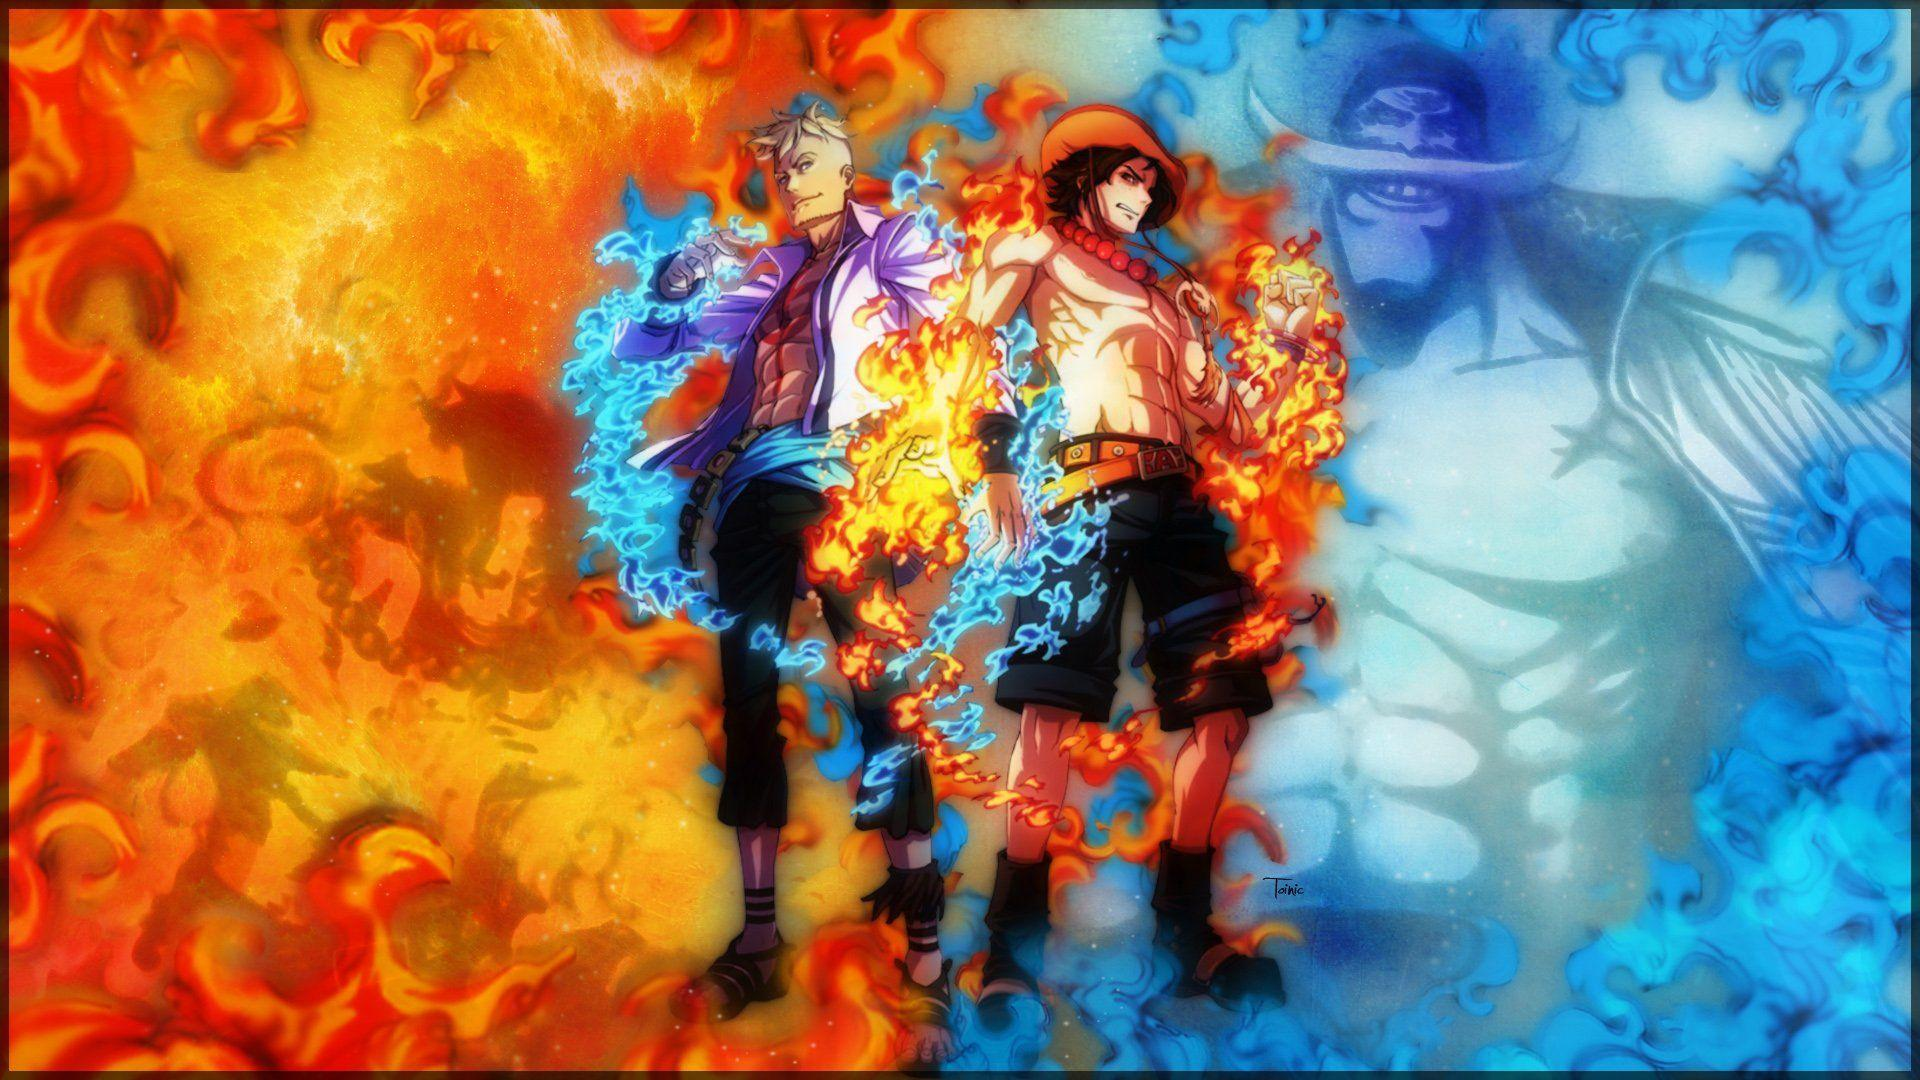 ONE PIECE Monkey D Luffy Sabo Portgas D Ace ASL wallpapers